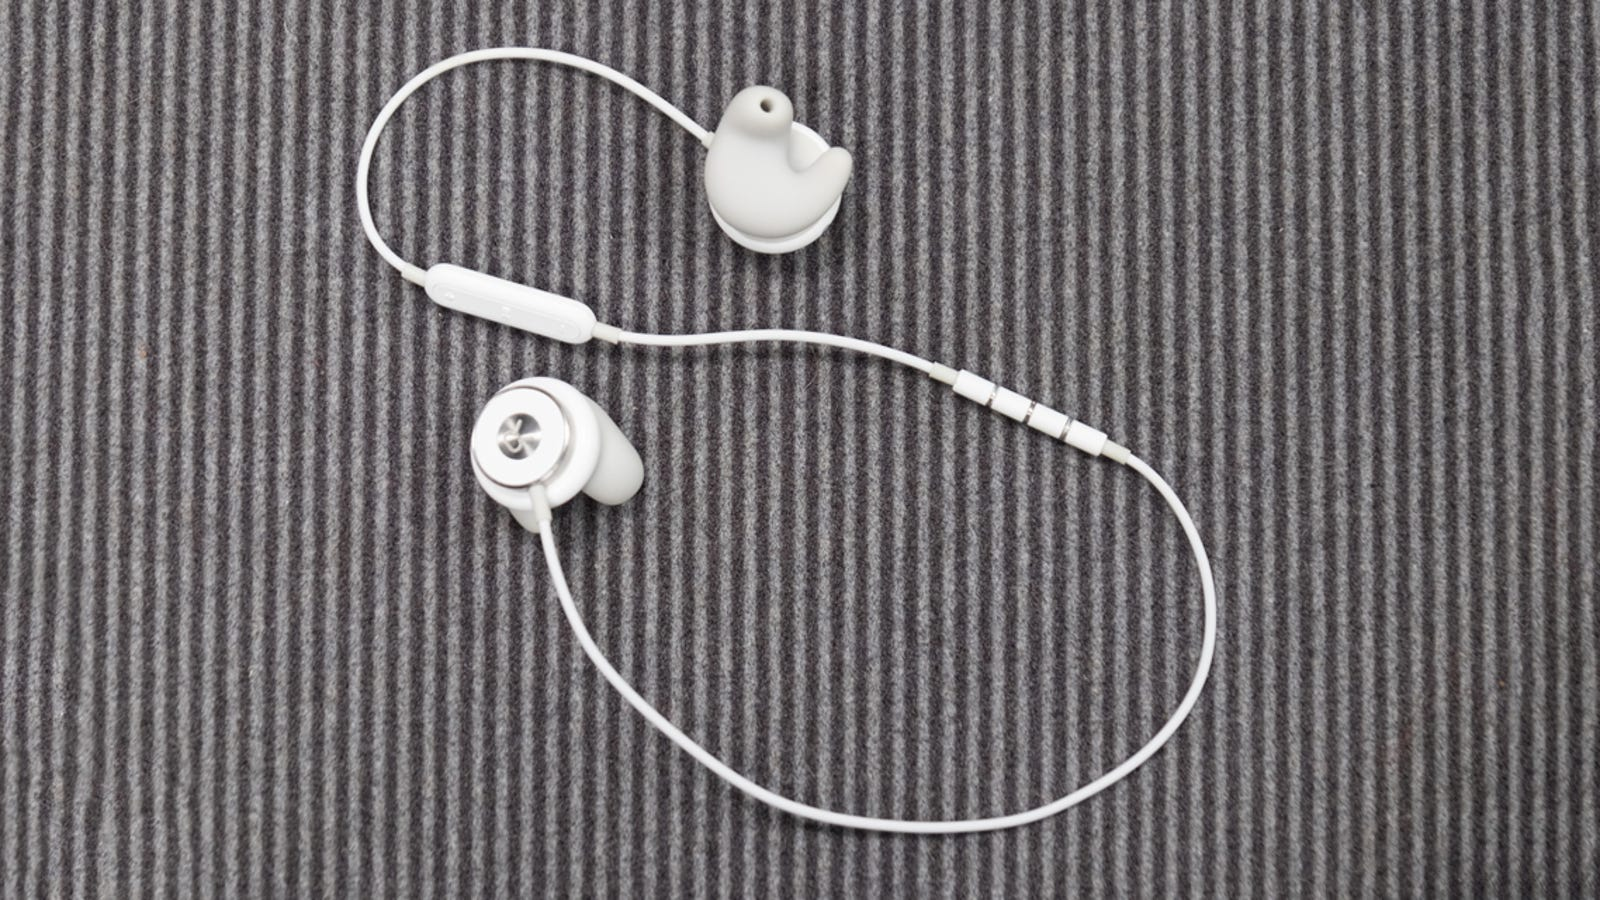 Earbuds classic sony - headphone covers foam sony